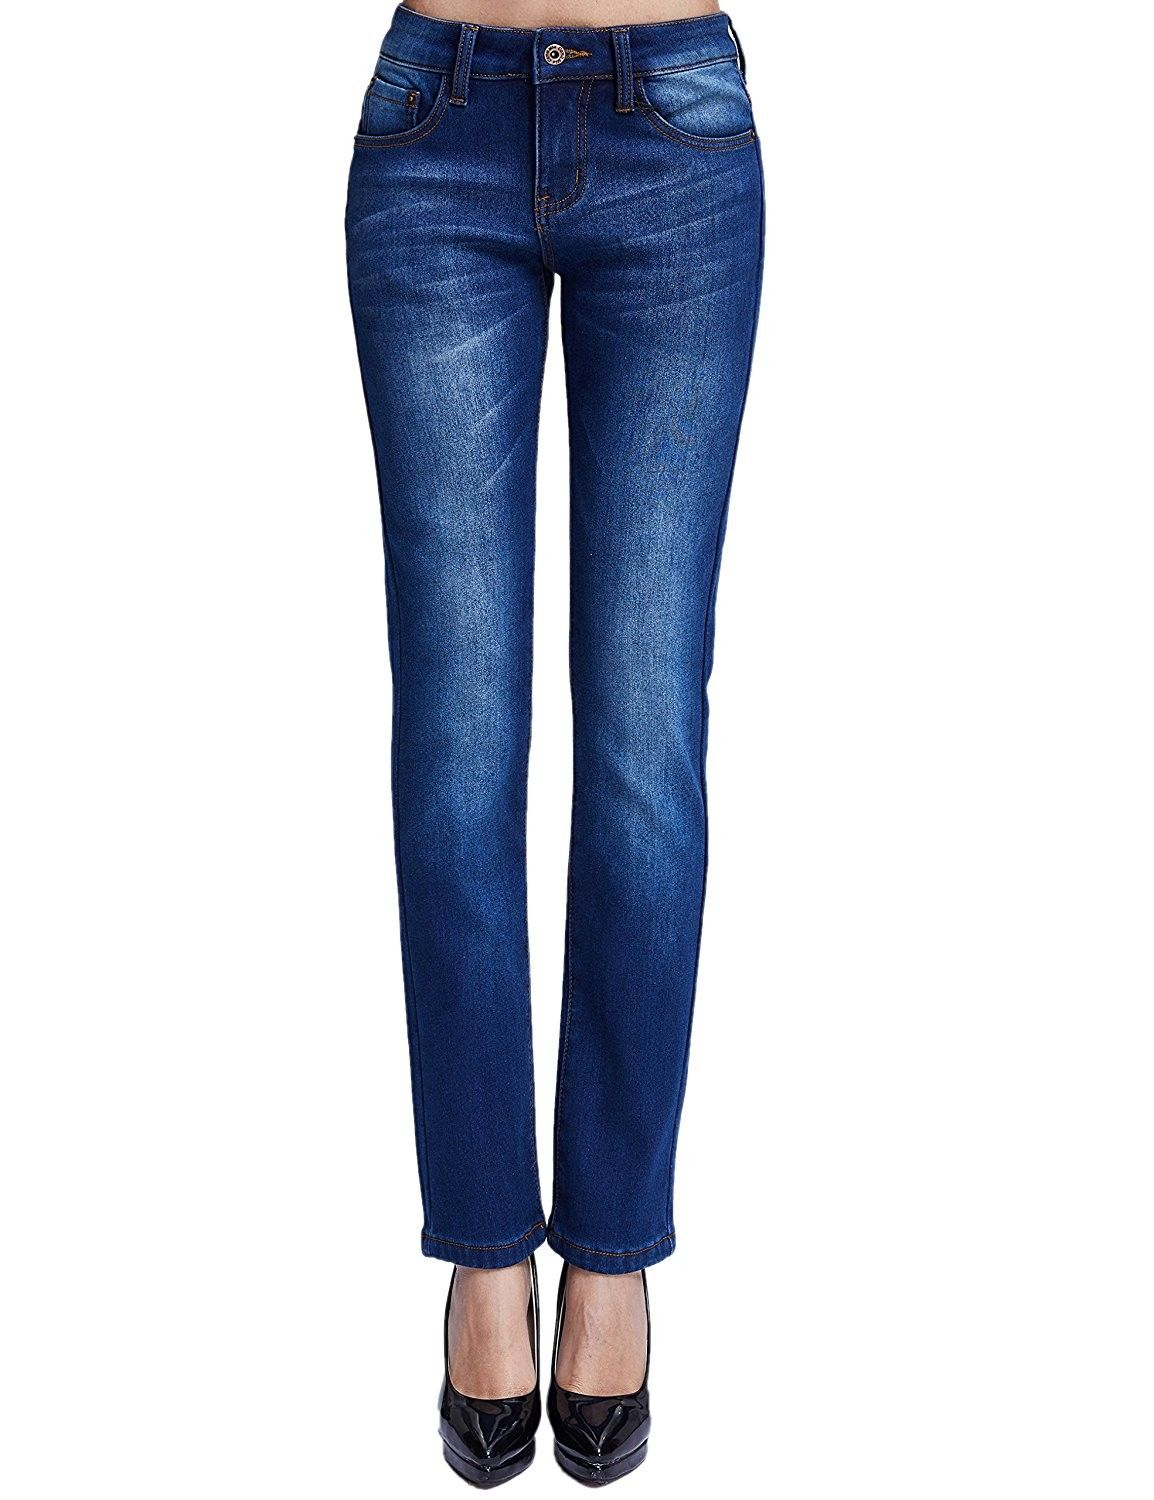 hot-selling great discount for beauty Women's Thermal Slim Fit Fleece Lined Jeans - Blue (New Size ...